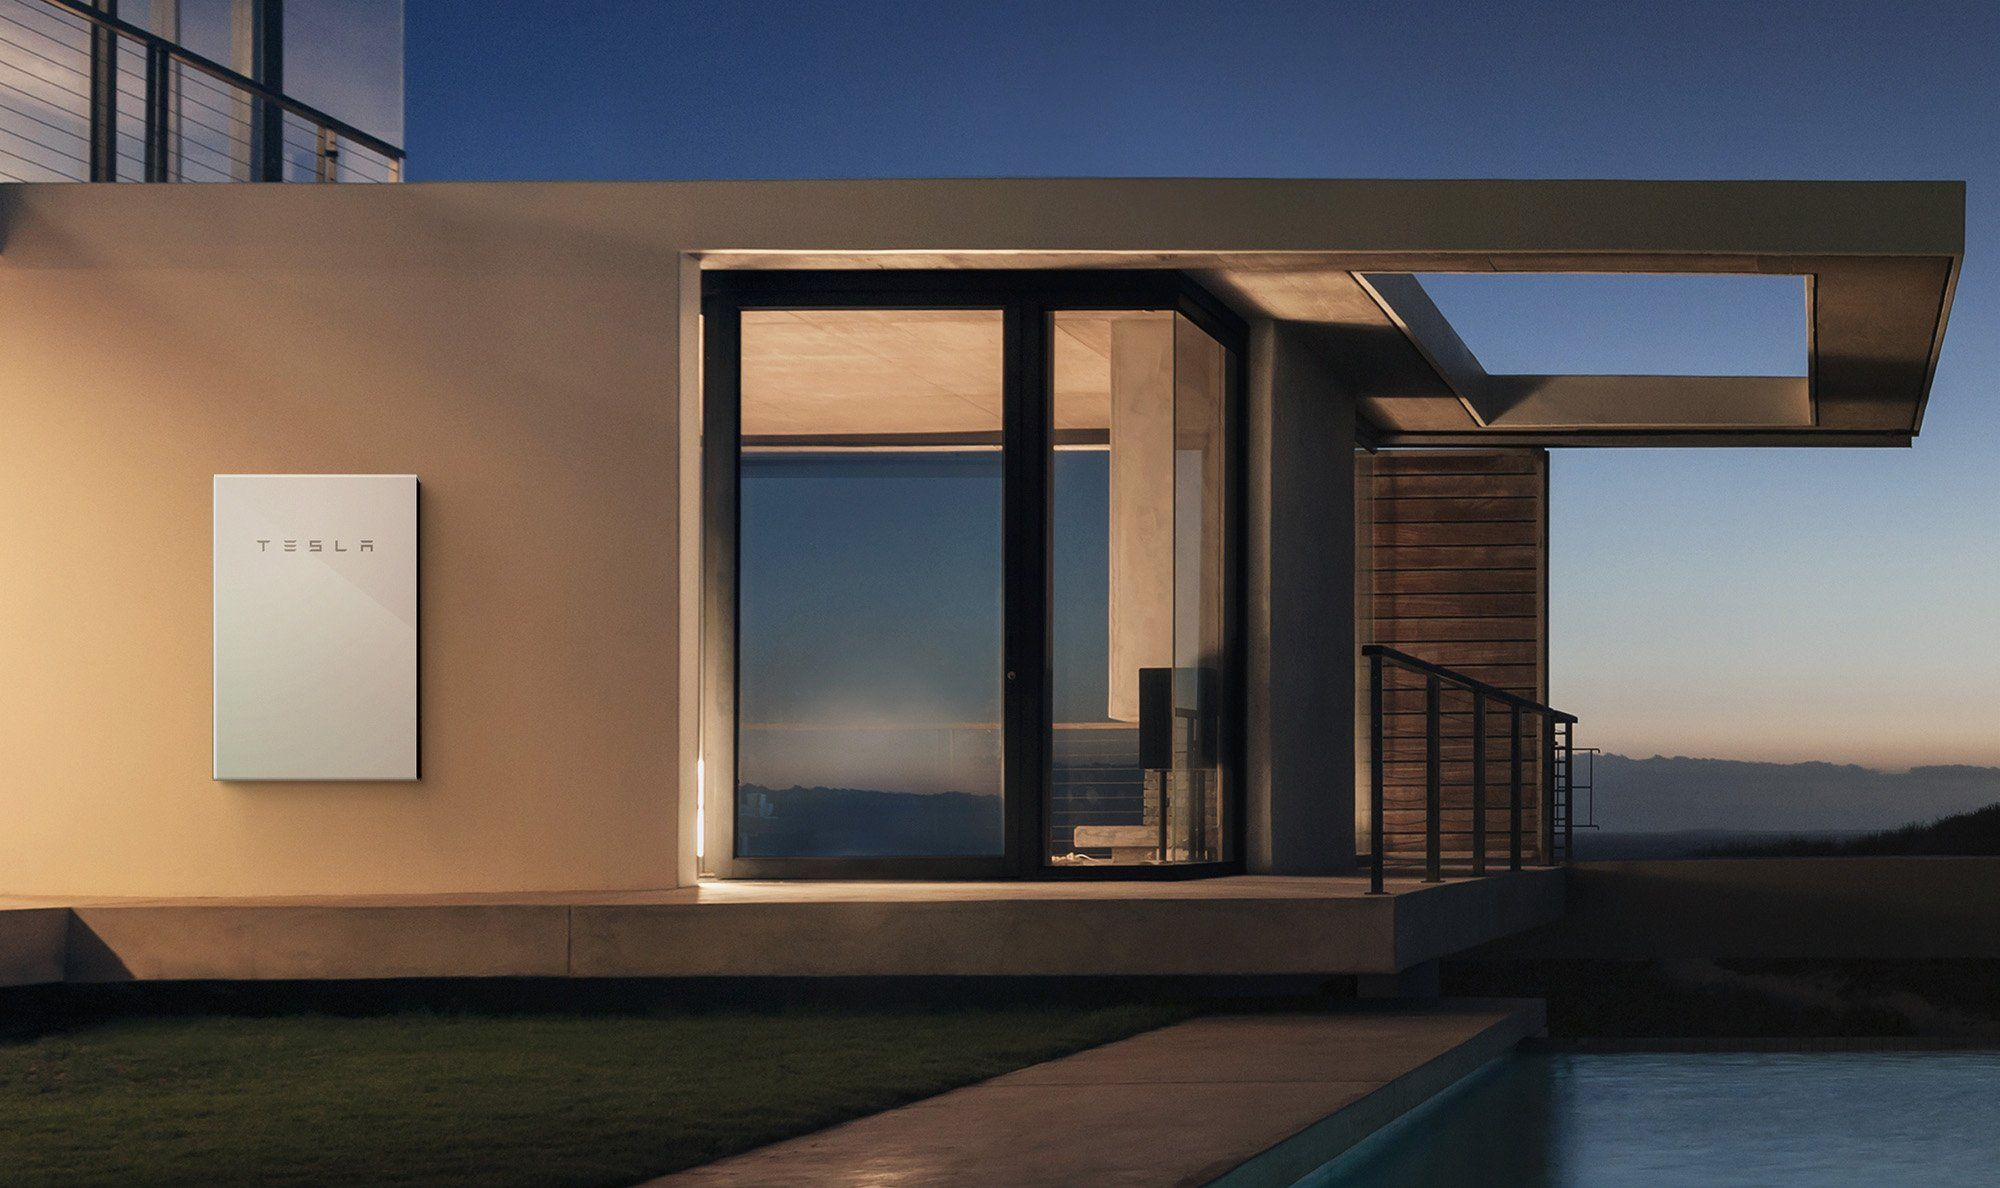 Tesla's Powerwall home battery led in installations supported by California's distributed storage incentive in 2020.